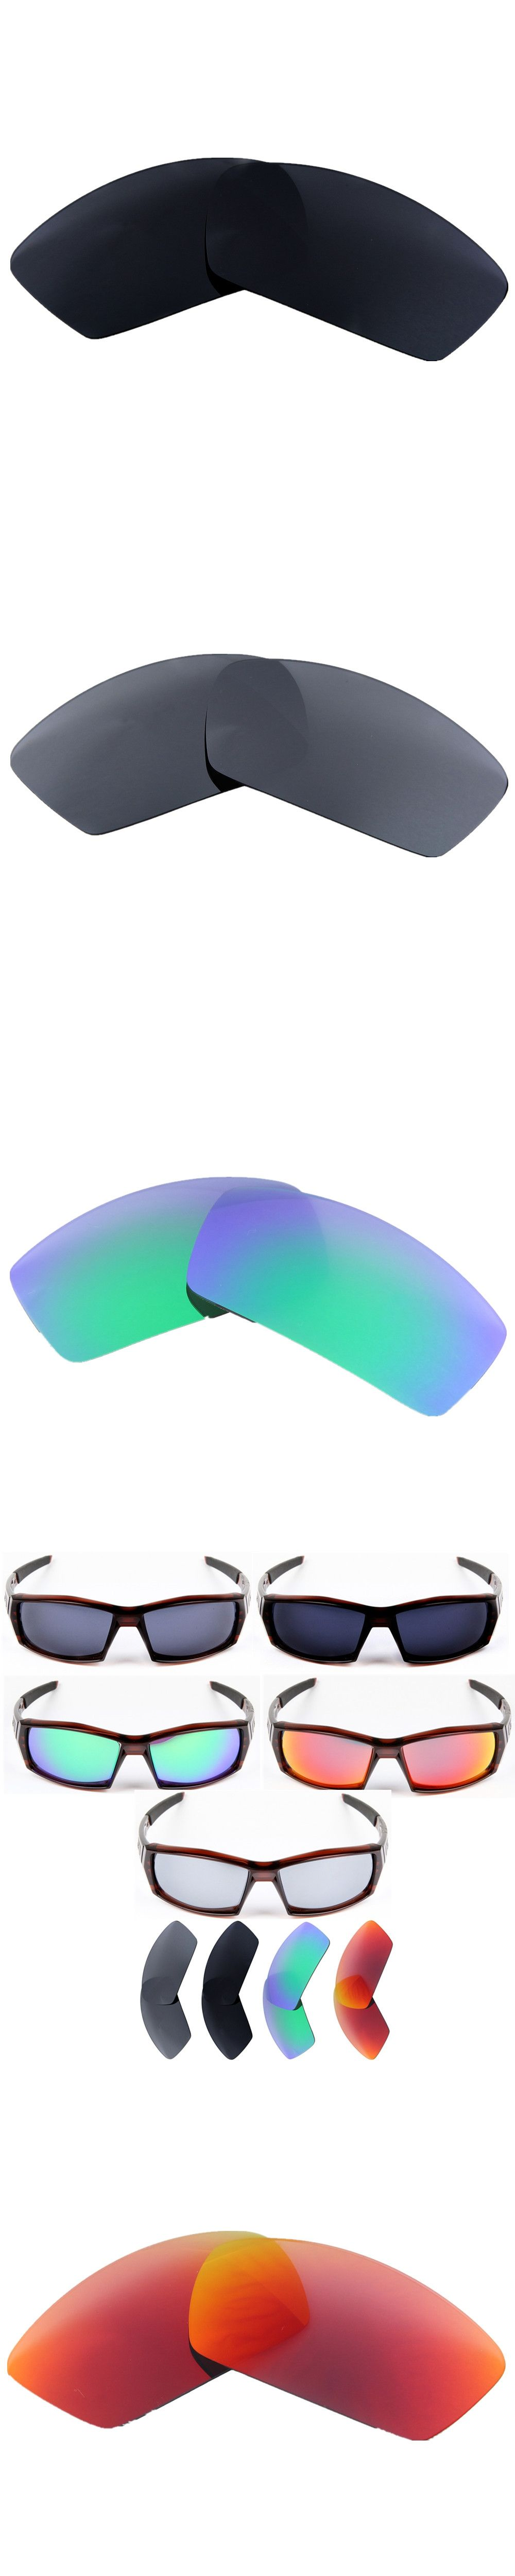 d69690b82be Inew polarized replacement lenses for Canteen- option colors ...